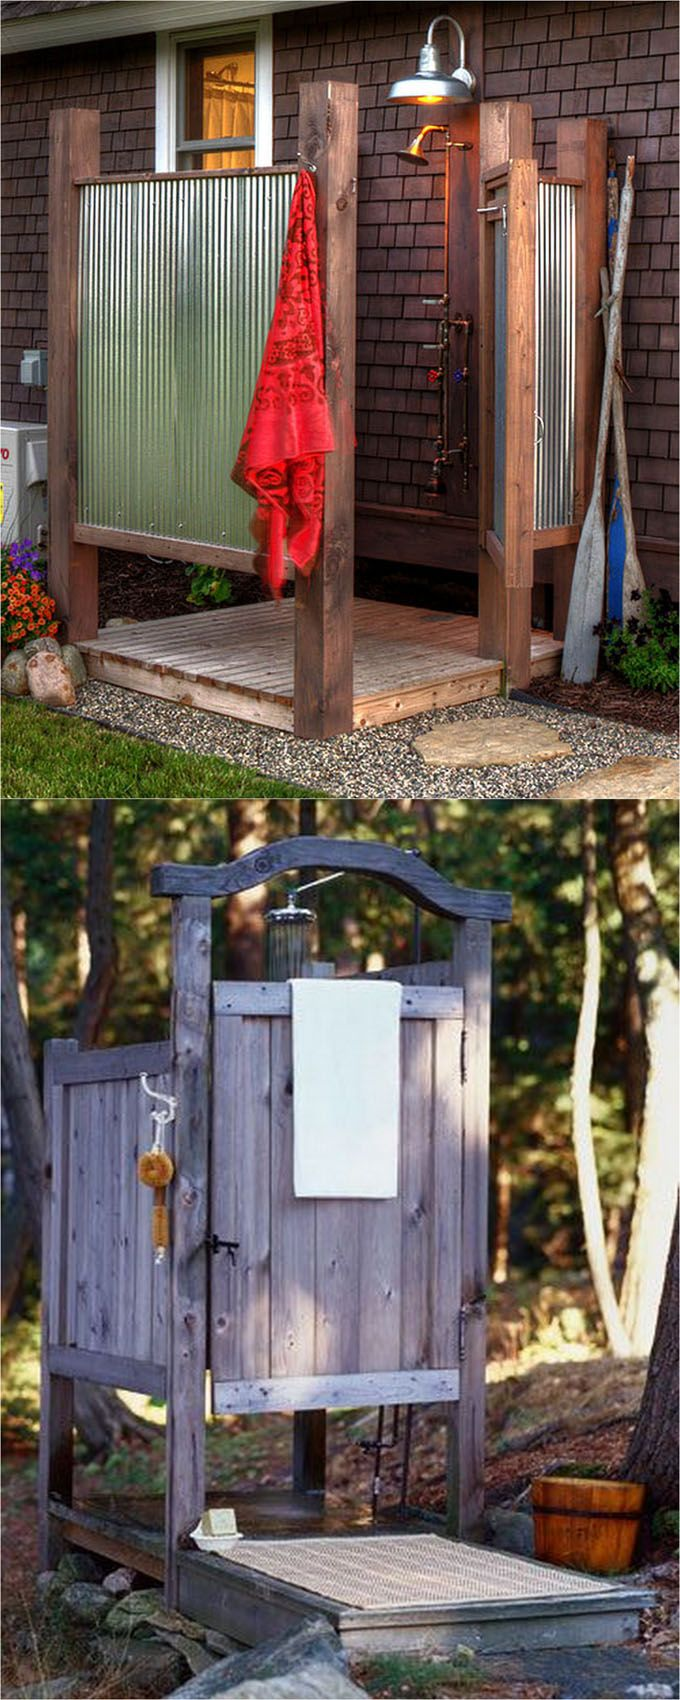 Simple Outdoor Shower Ideas Part - 34: 32 Inspiring DIY Outdoor Showers: Lots Of Ideas On How To Build Enclosures  With Simple Materials, Best Outdoor Shower Fixtures, Creative Designs And  More!